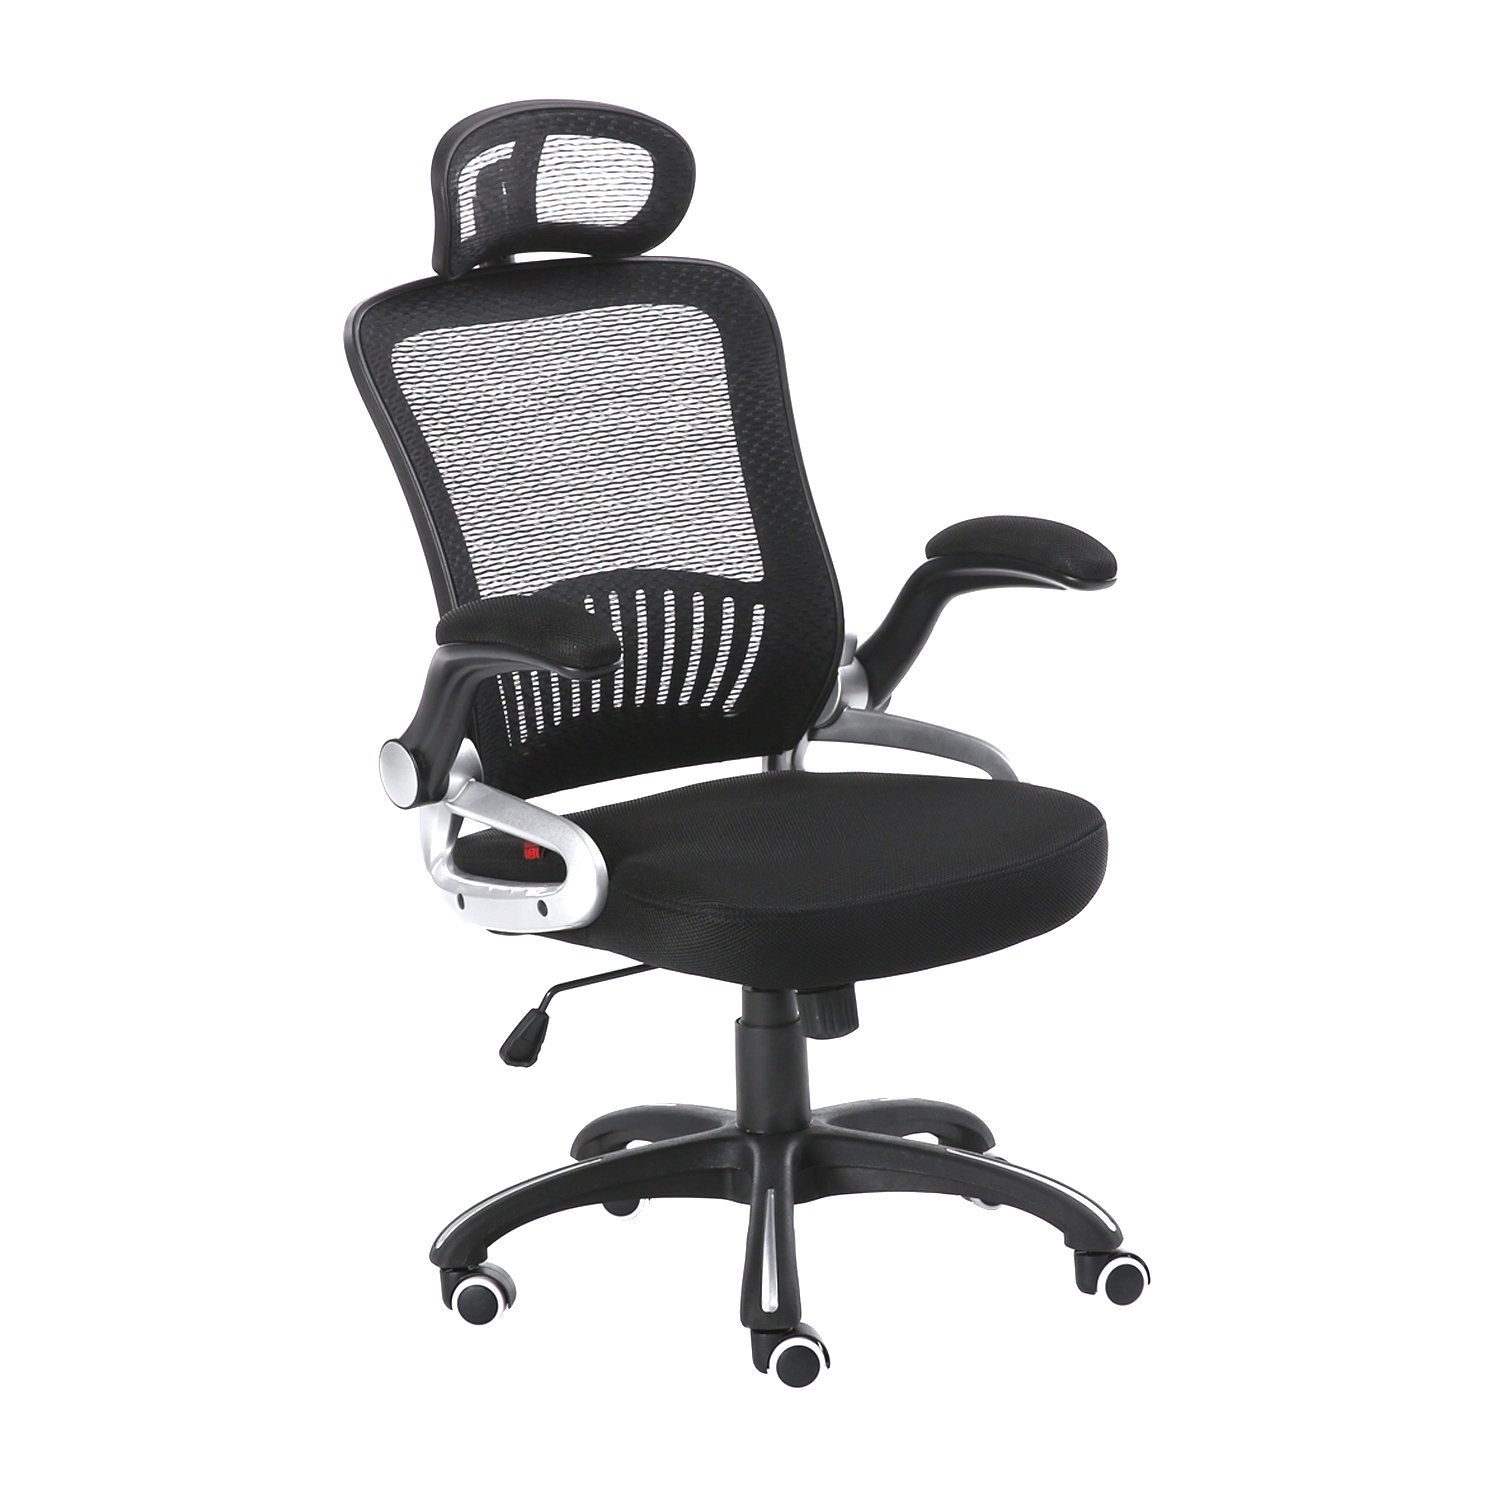 Amazoncom Lyon Bifma Certified Mesh Office Chair With Adjustable Headrest,